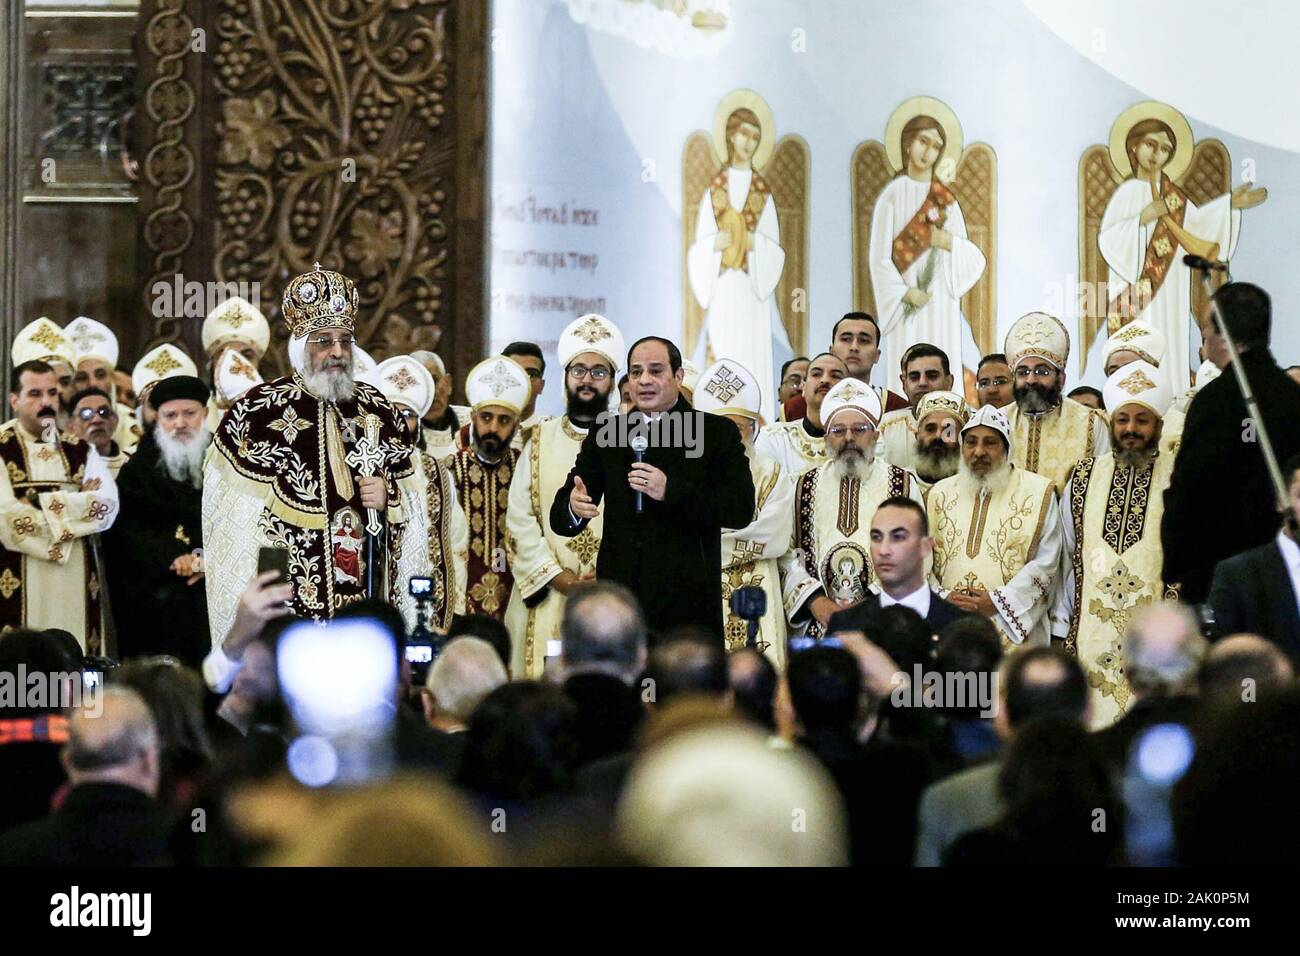 Pope Christmas Speech 2020 Cairo, Egypt. 06th Jan, 2020. Egyptian President Abdel Fattah el